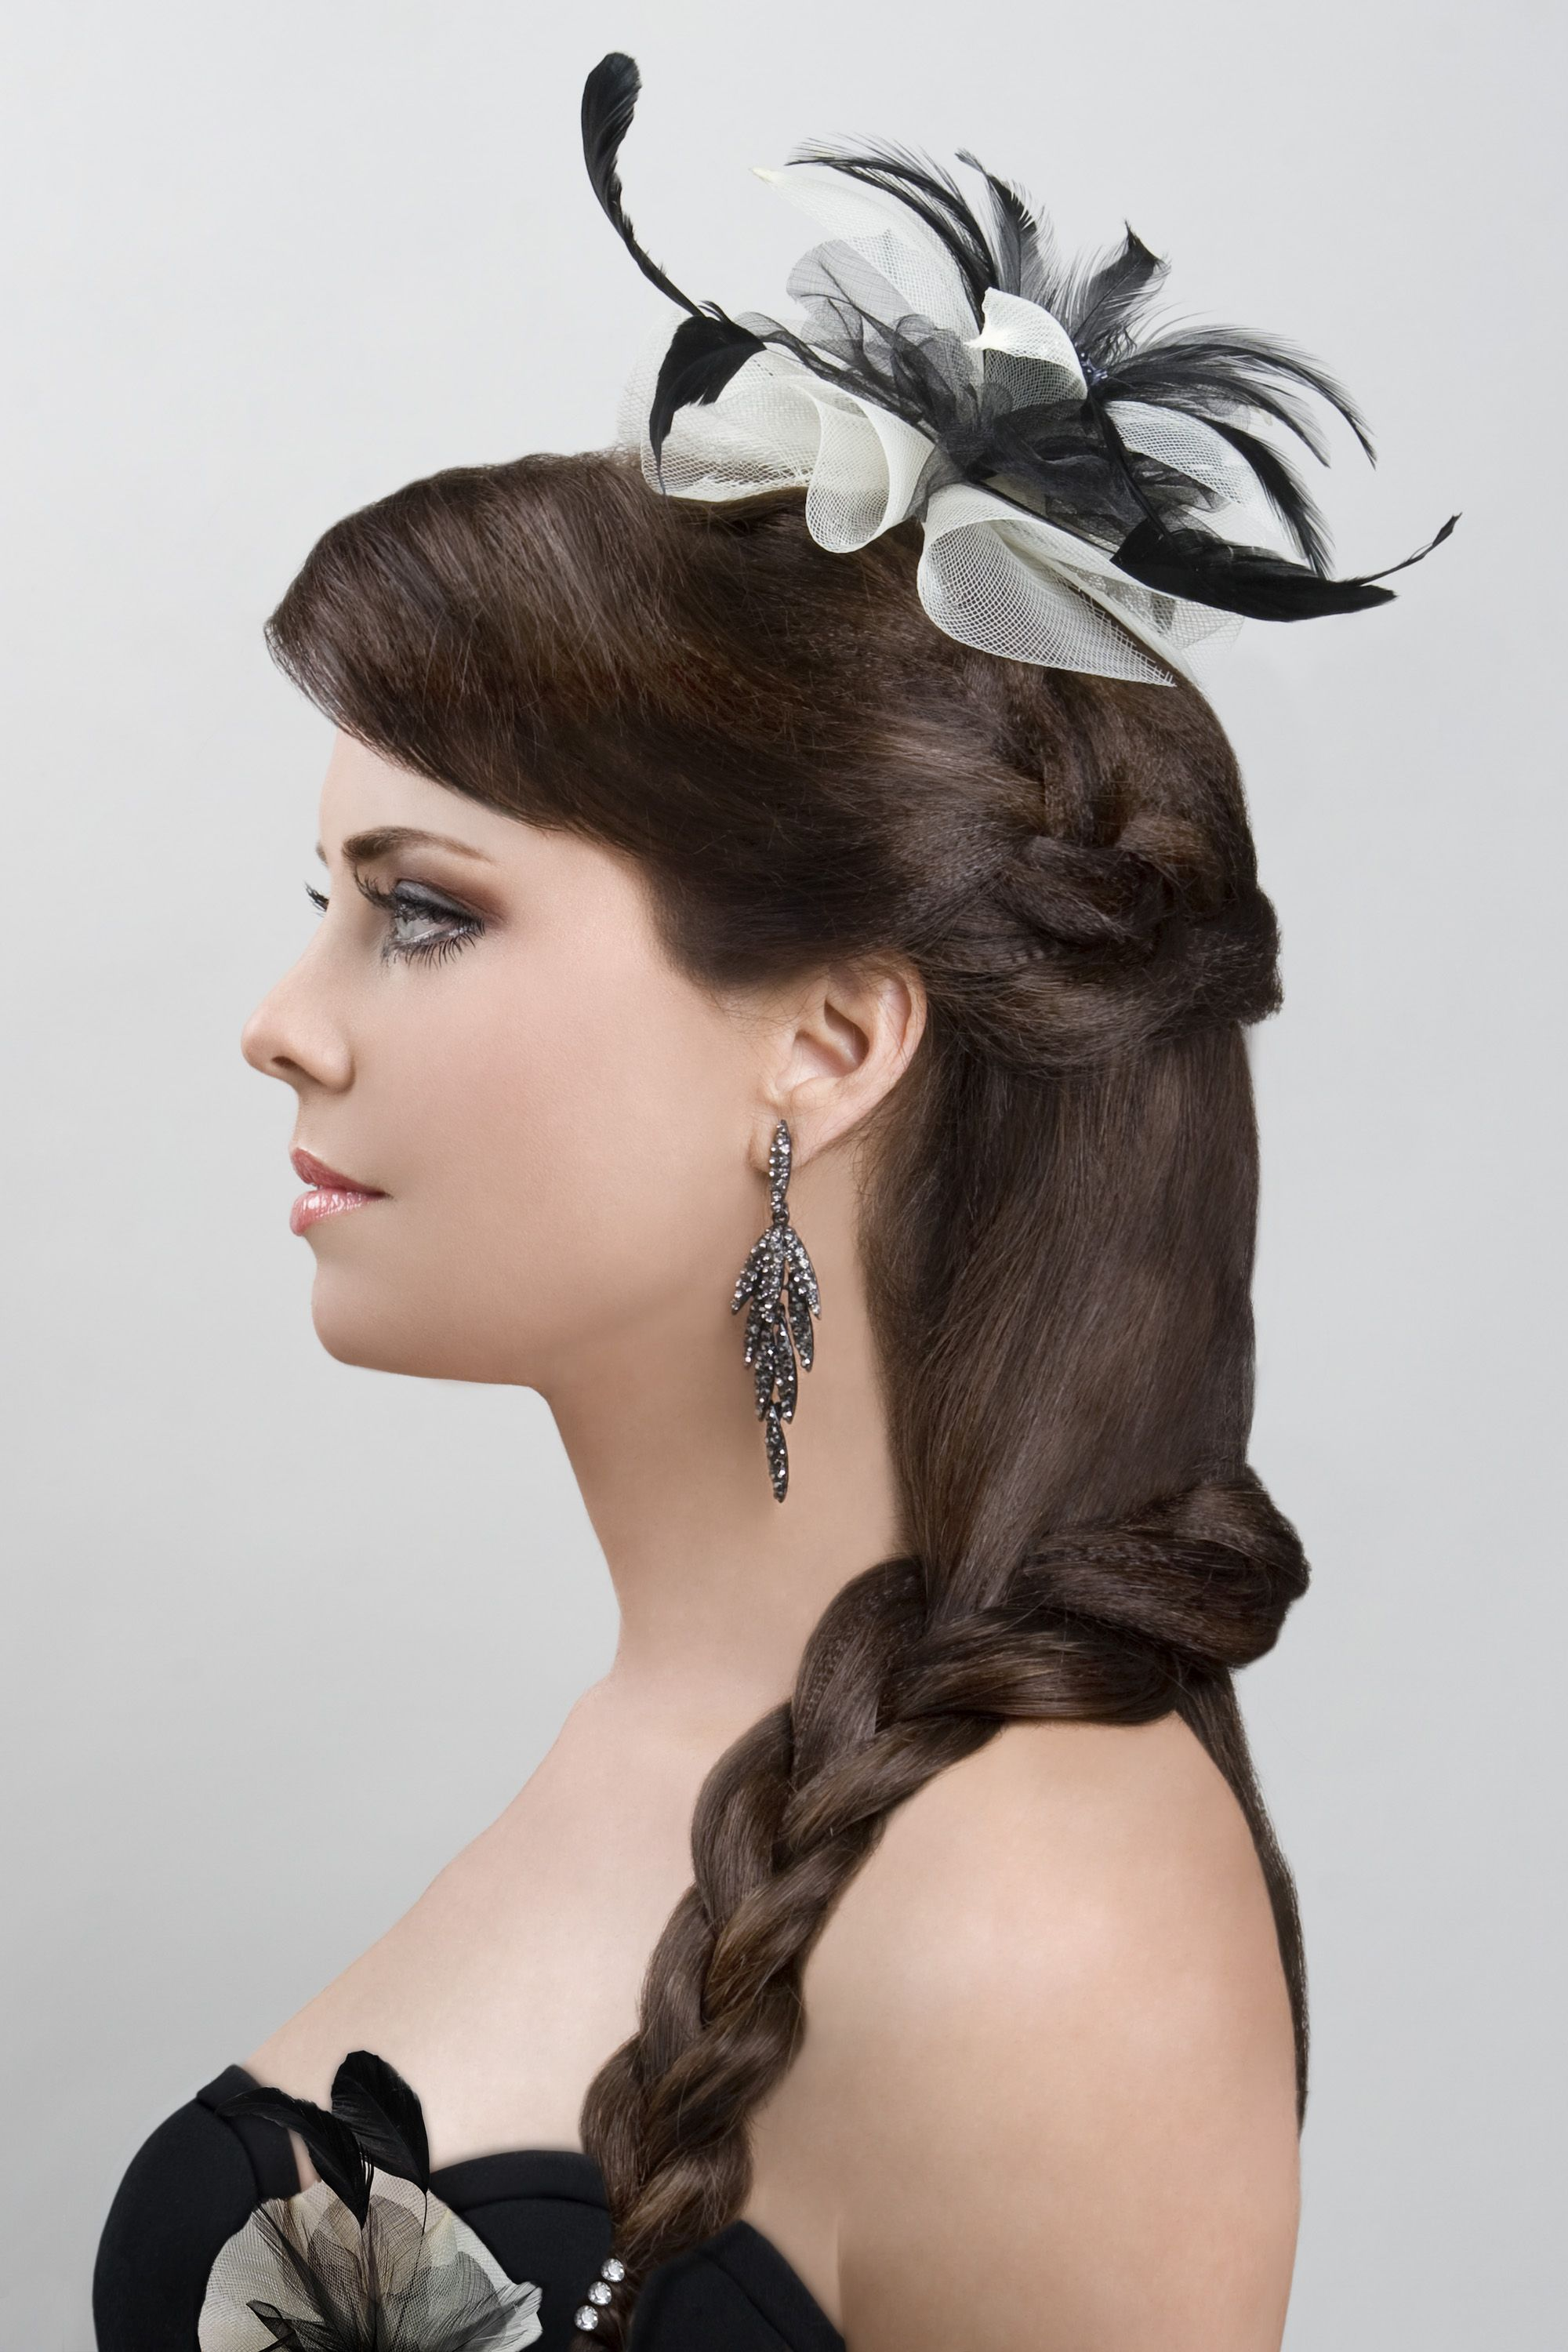 Model/Actress:  Donna Marie Rocco Hair Side View #Up-Dos Dream Catchers Salon LIKE us on www.facebook.com/DreamCatchersSalon and visit us at www.ellahairdesign.com